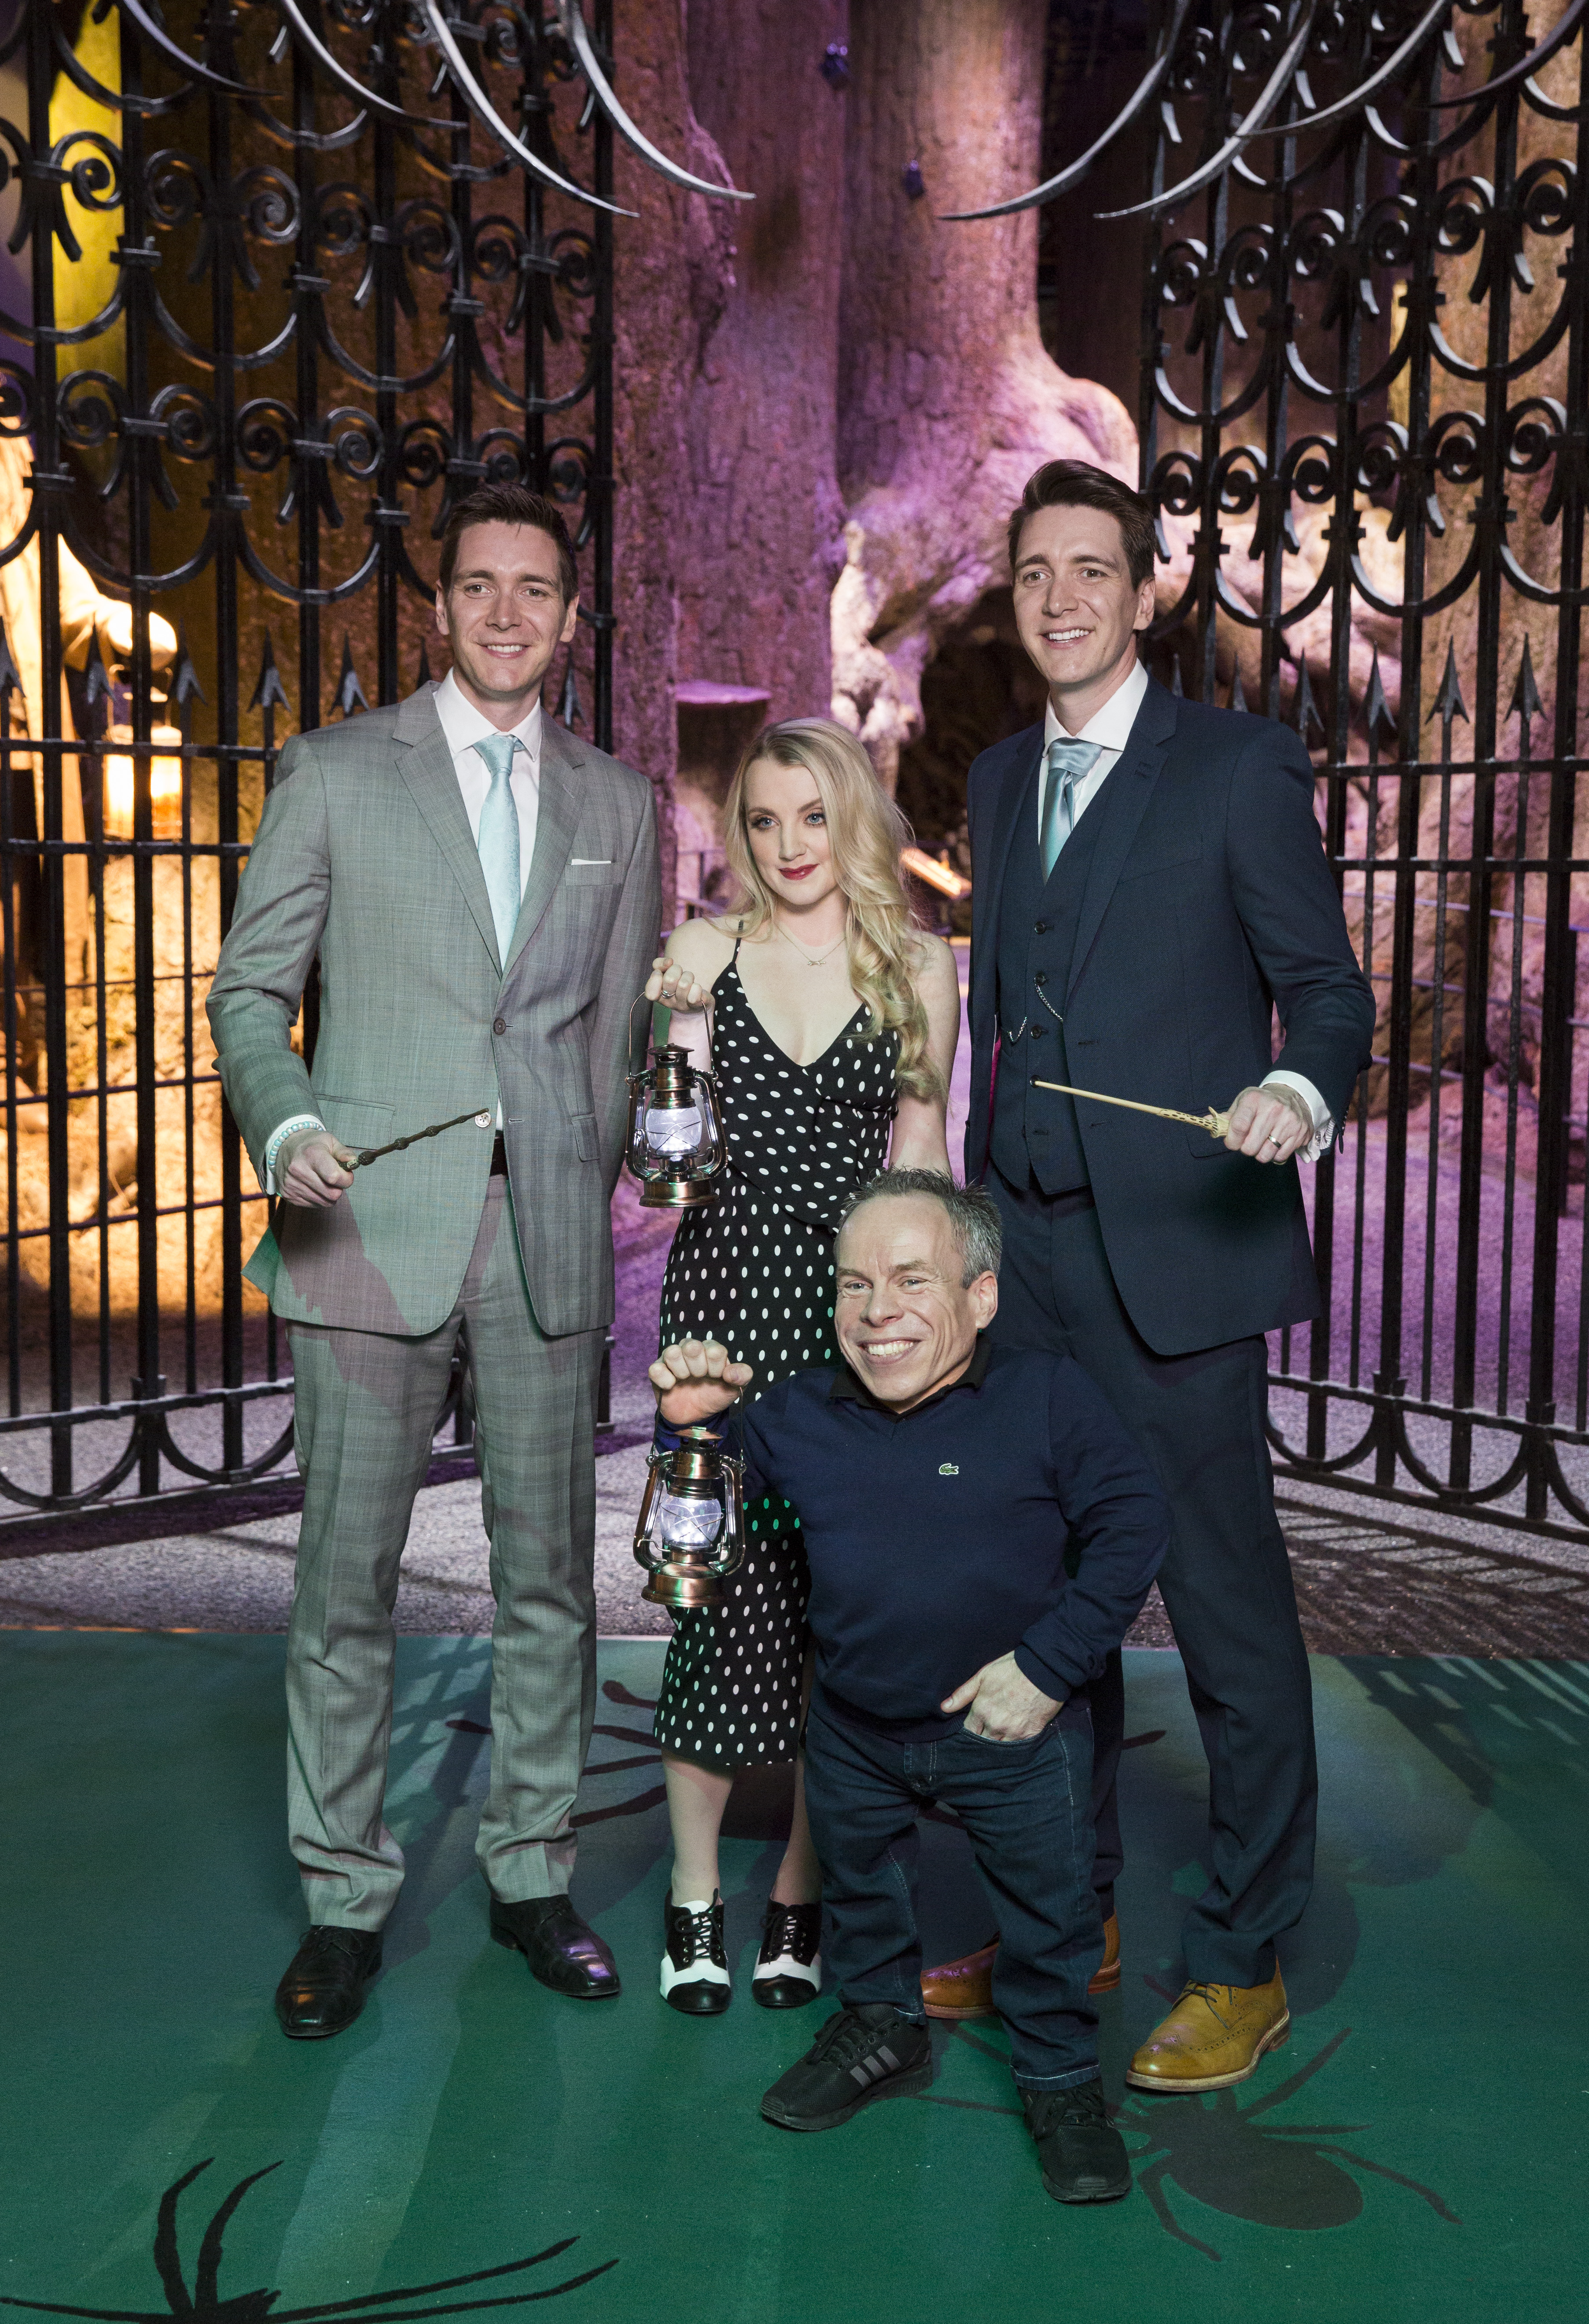 Luna Lovegood And The Weasley Twins Reunited And When Did